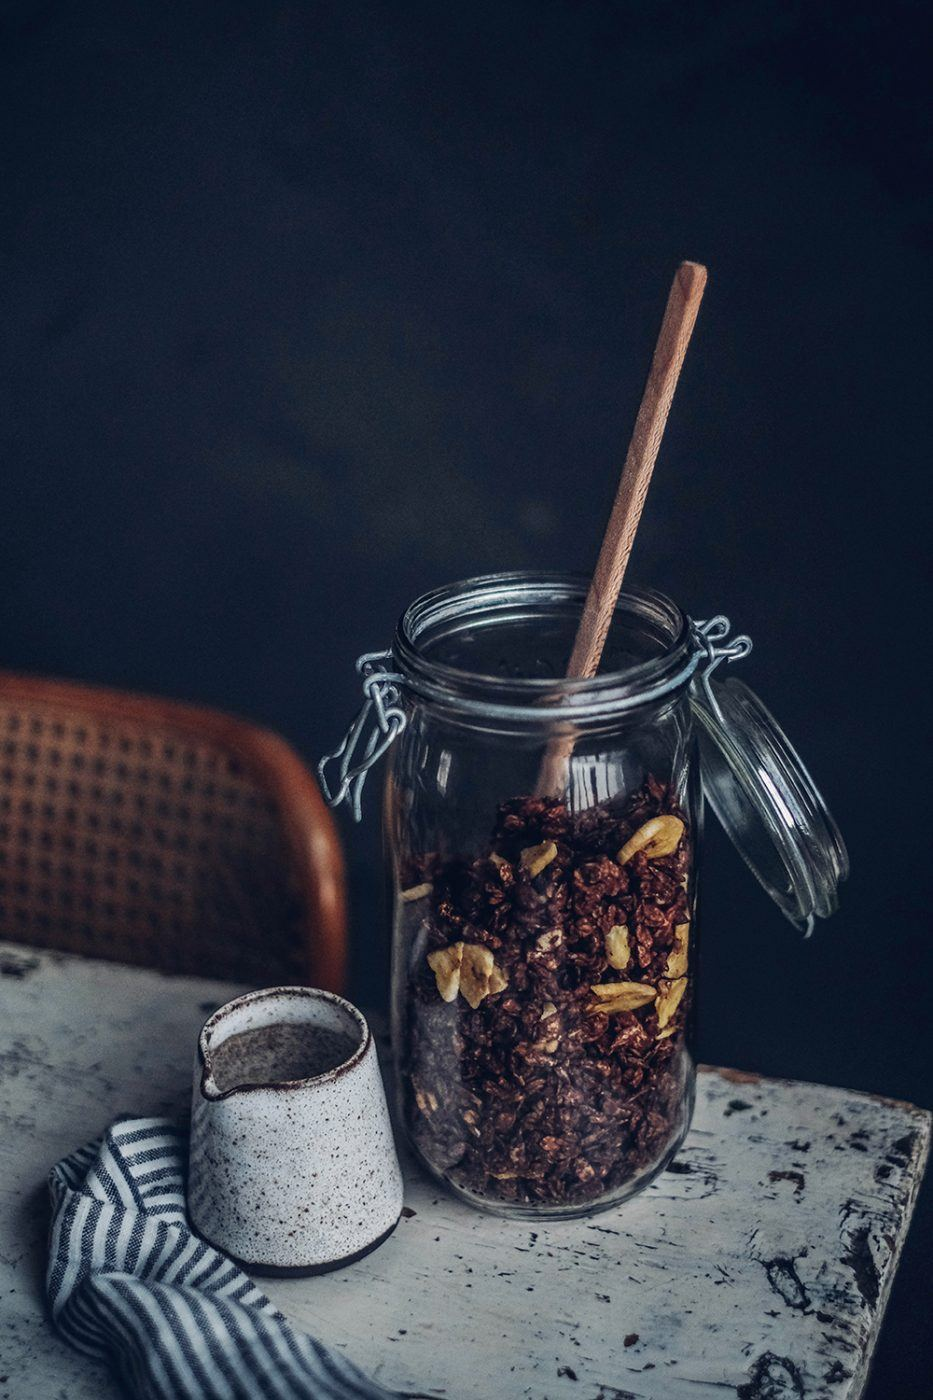 gluten-free chocolate granola homemade